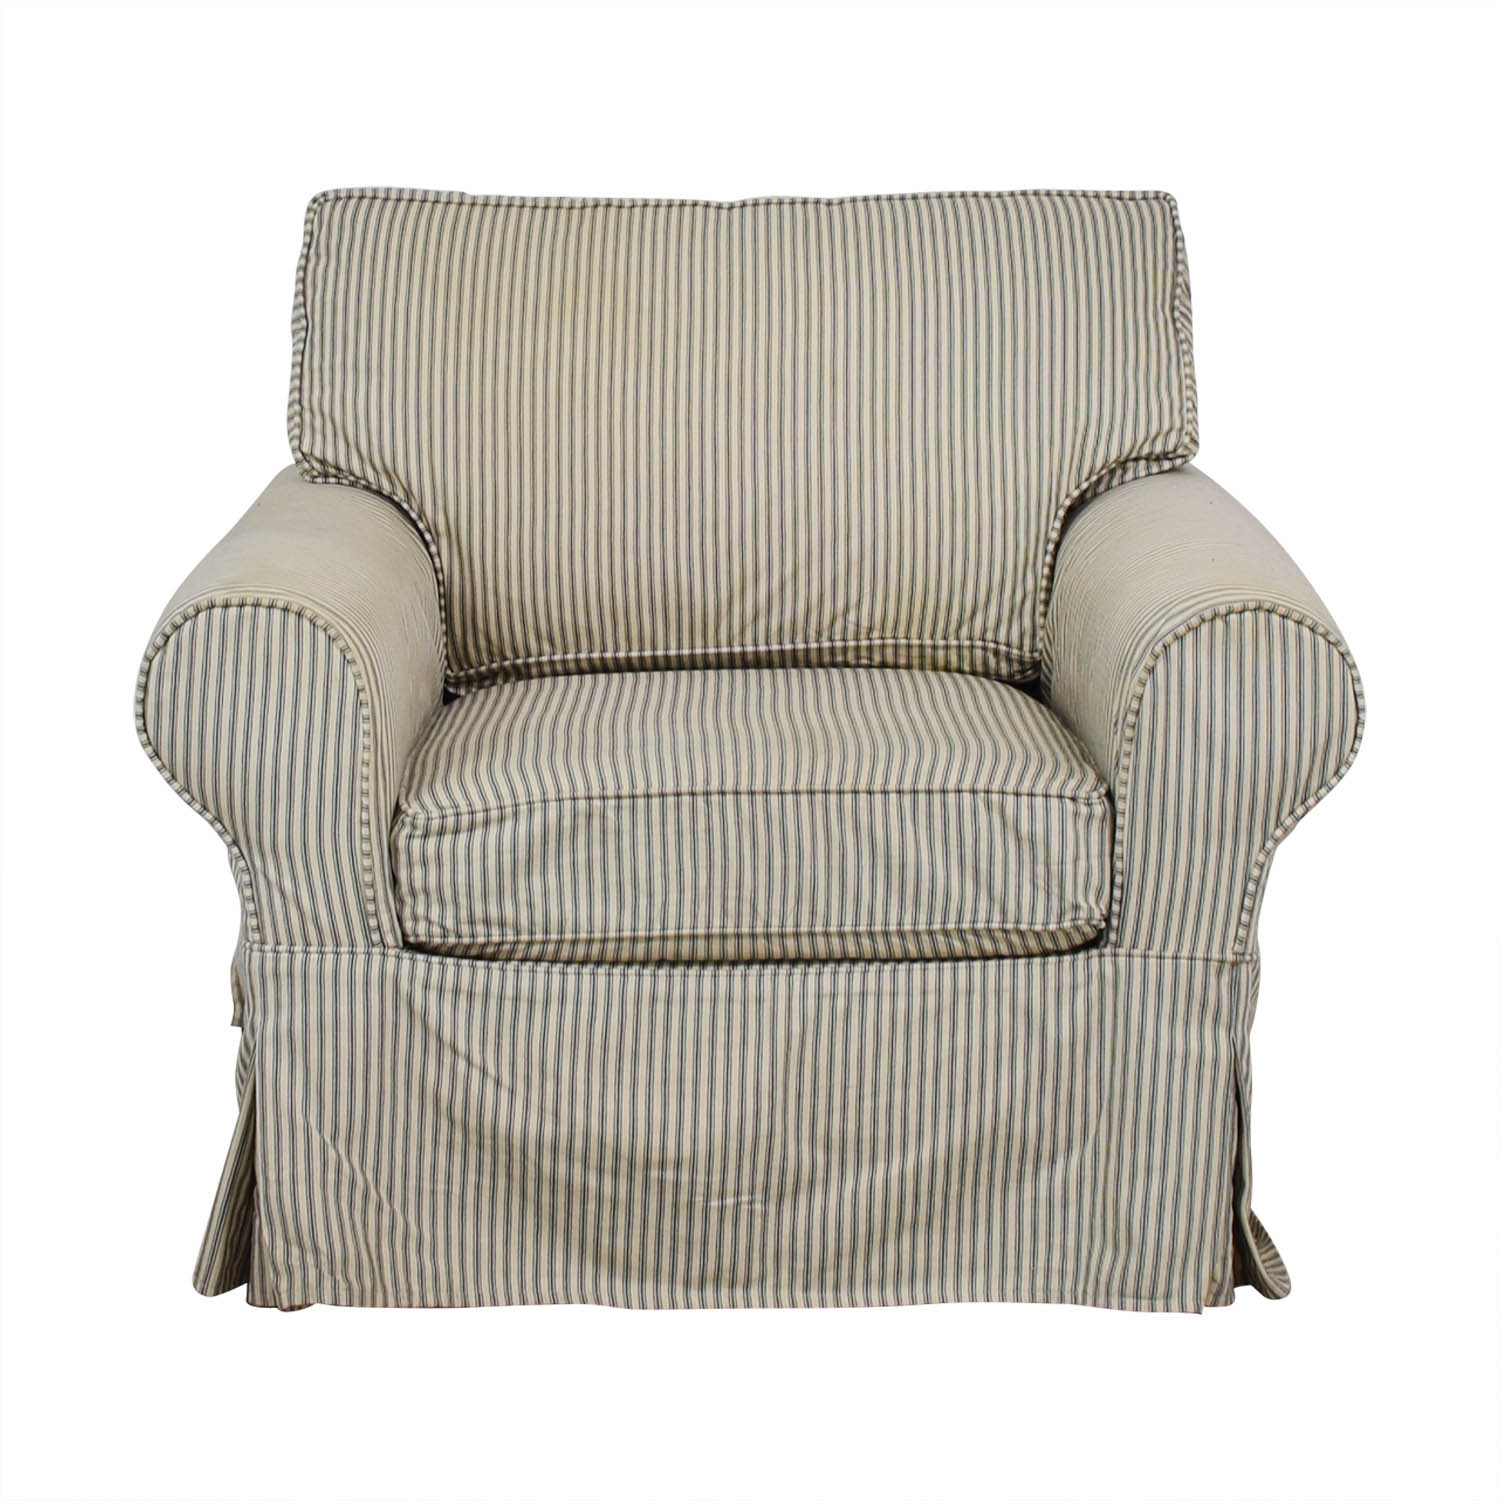 Mitchell Gold + Bob Williams Mitchell Gold + Bob Williams Comfort Roll Arm Slipcovered Grand Chair used